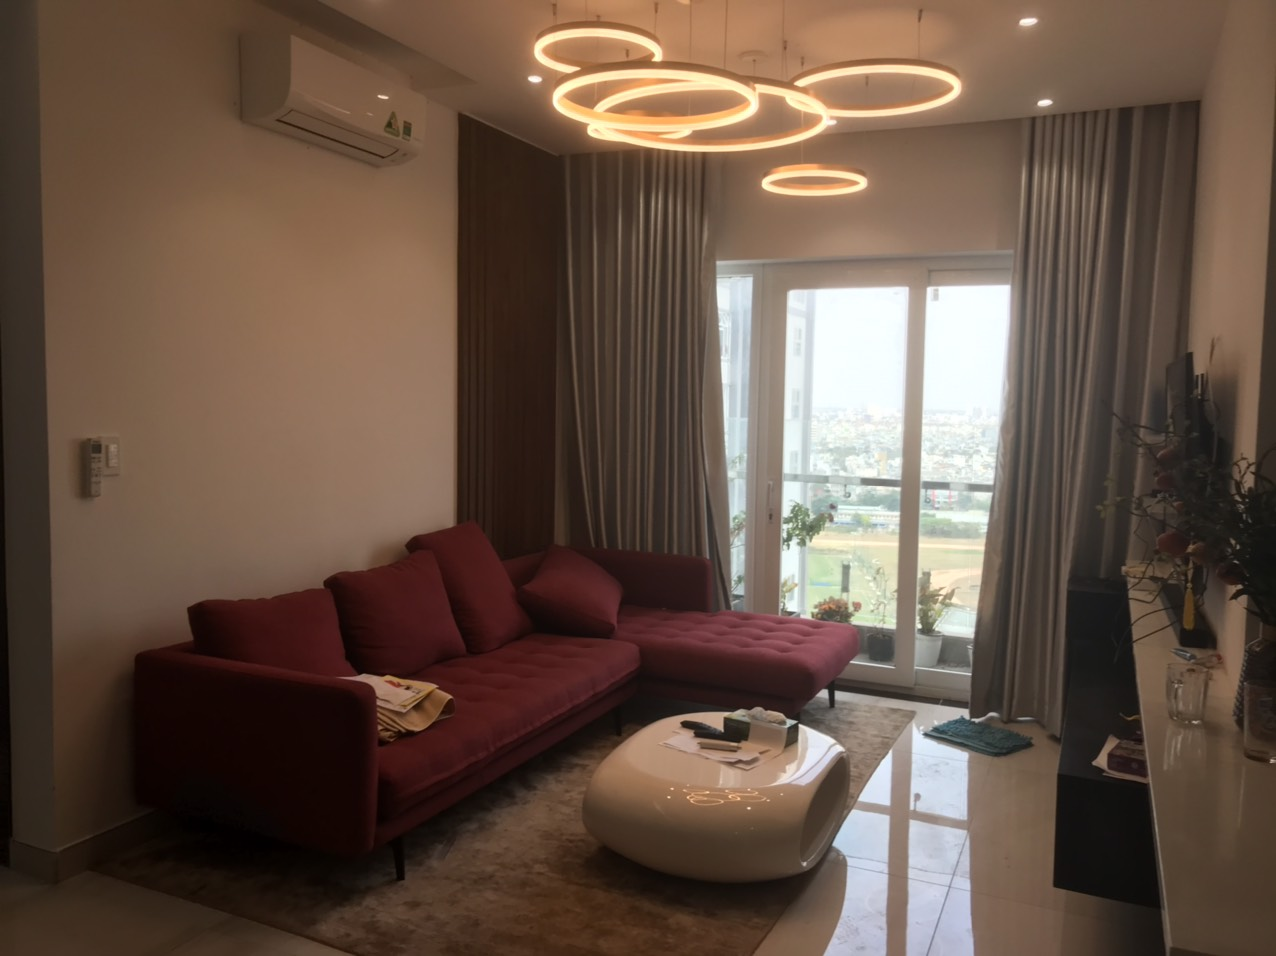 sale Xi Grand Court - 3 bedroom - 2 wc